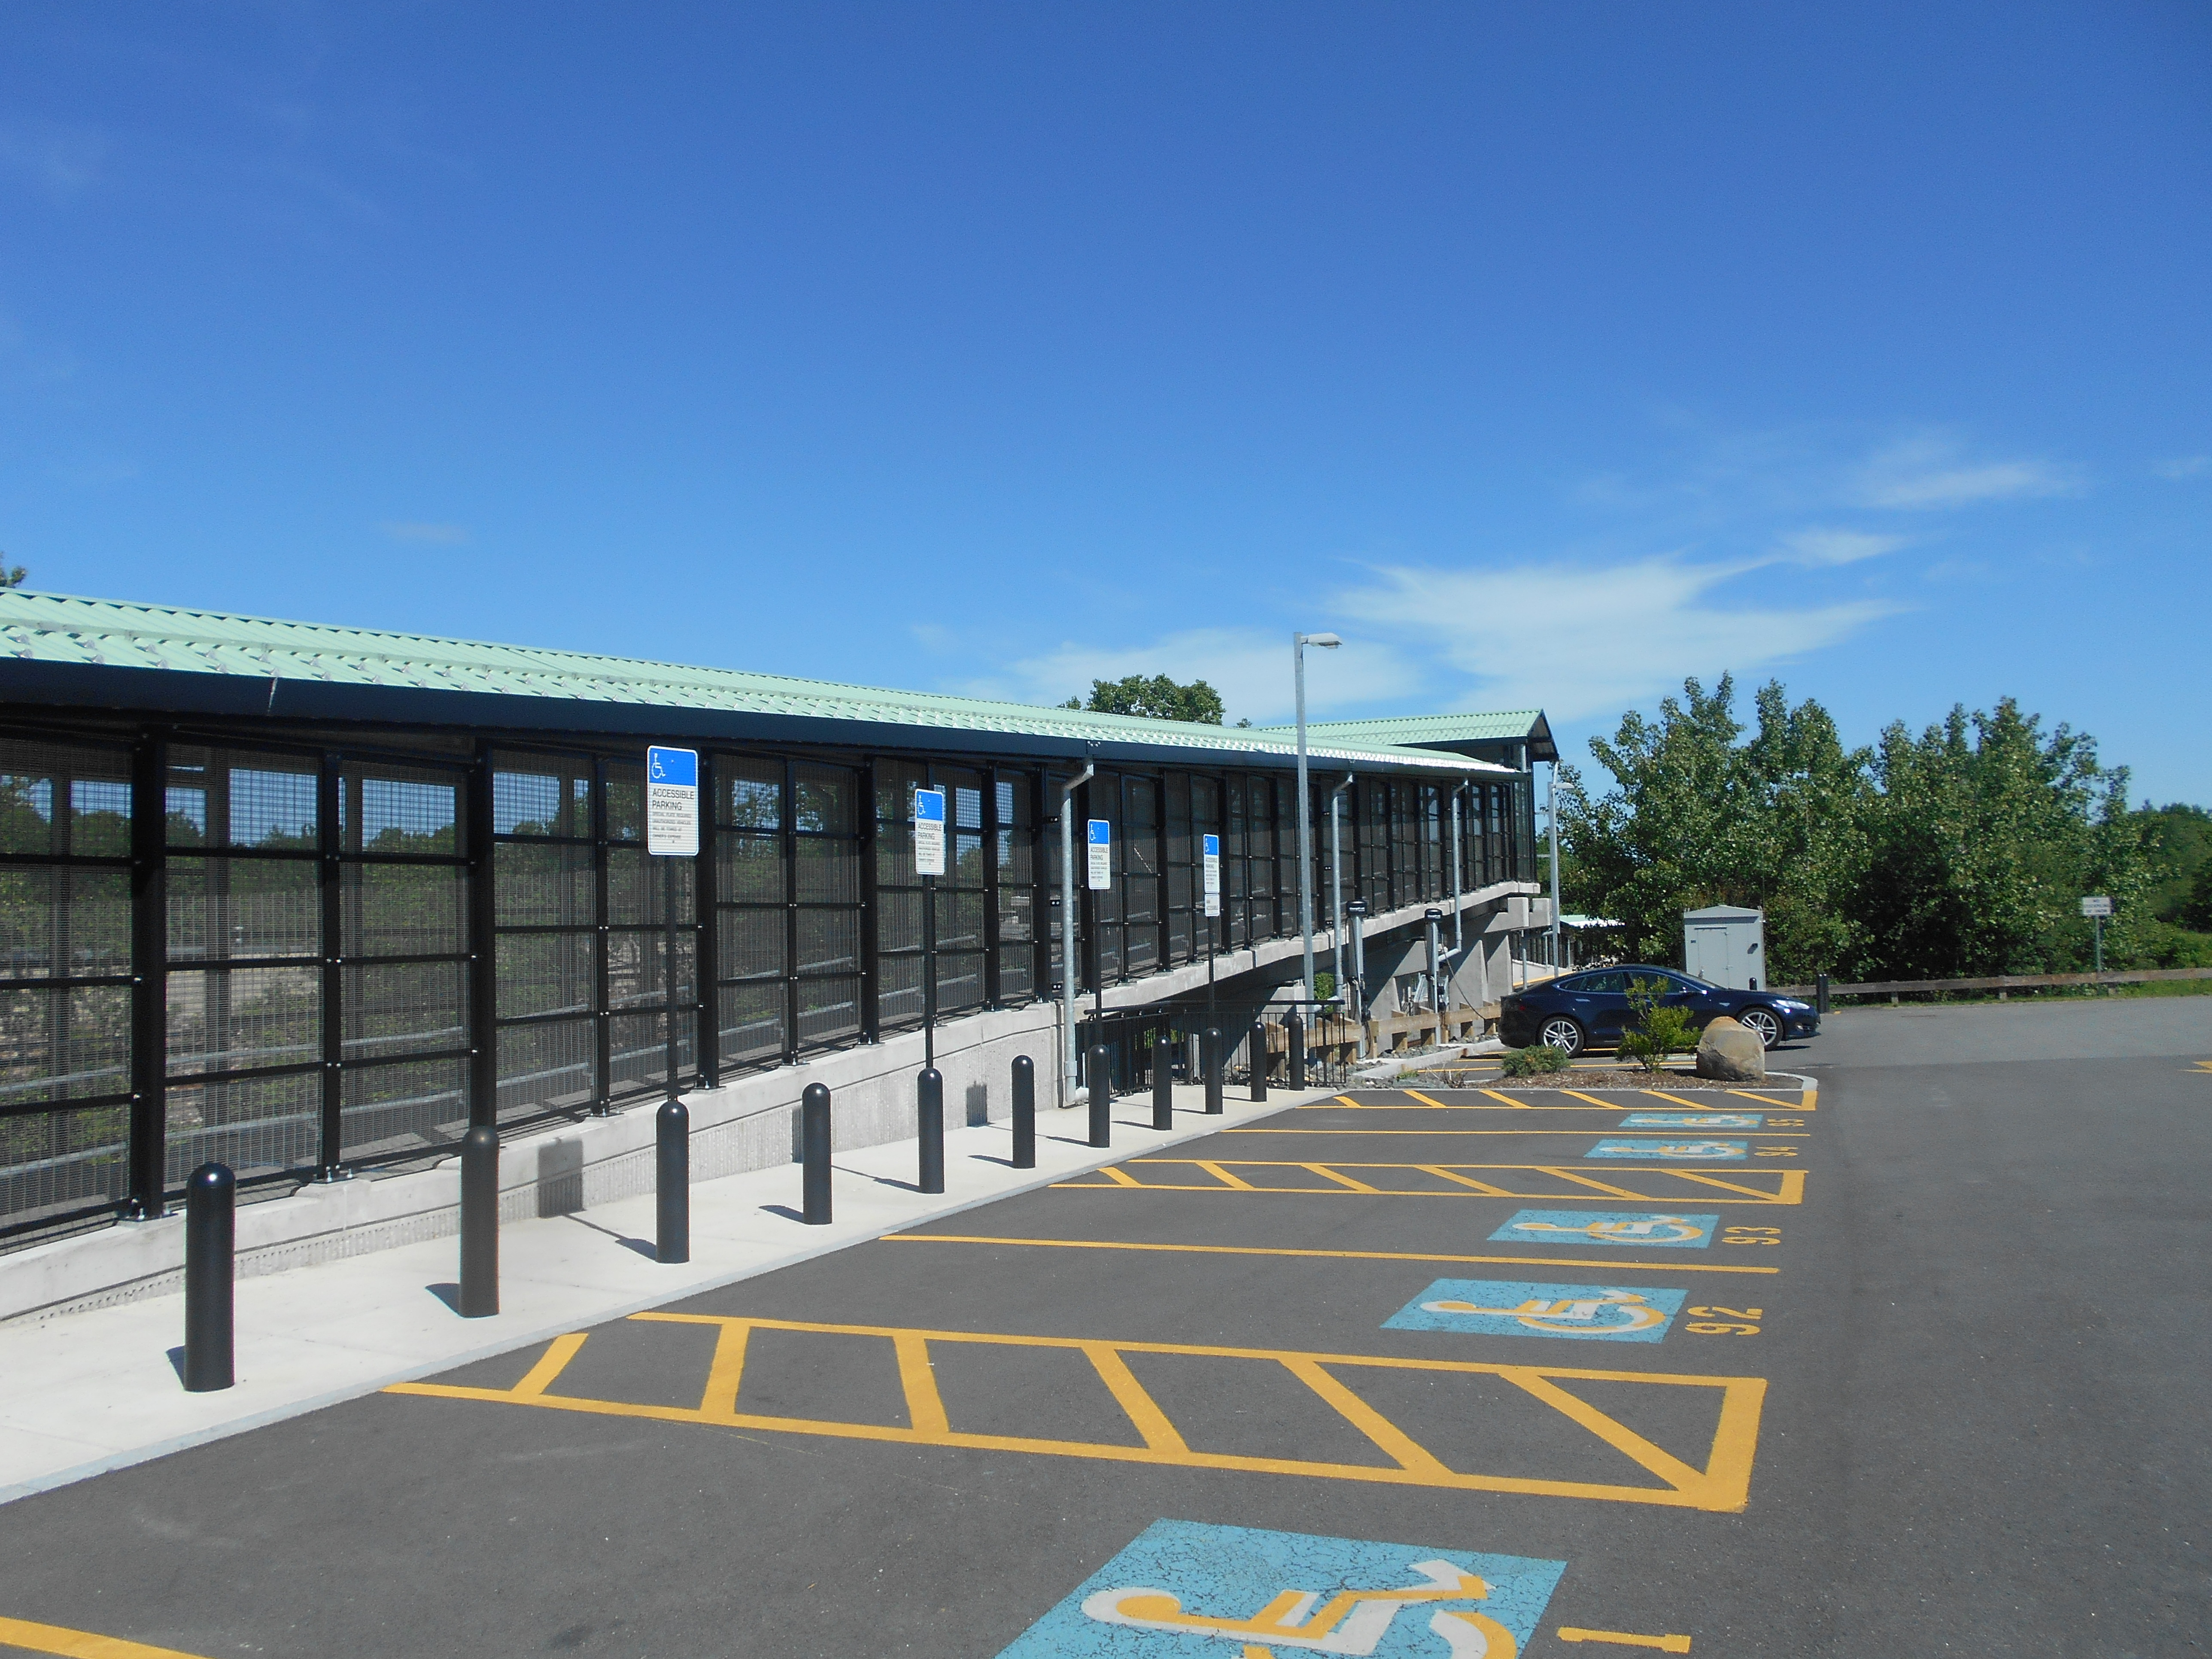 File Handicapped parking and ramp at Littleton station jpg. File Handicapped parking and ramp at Littleton station jpg